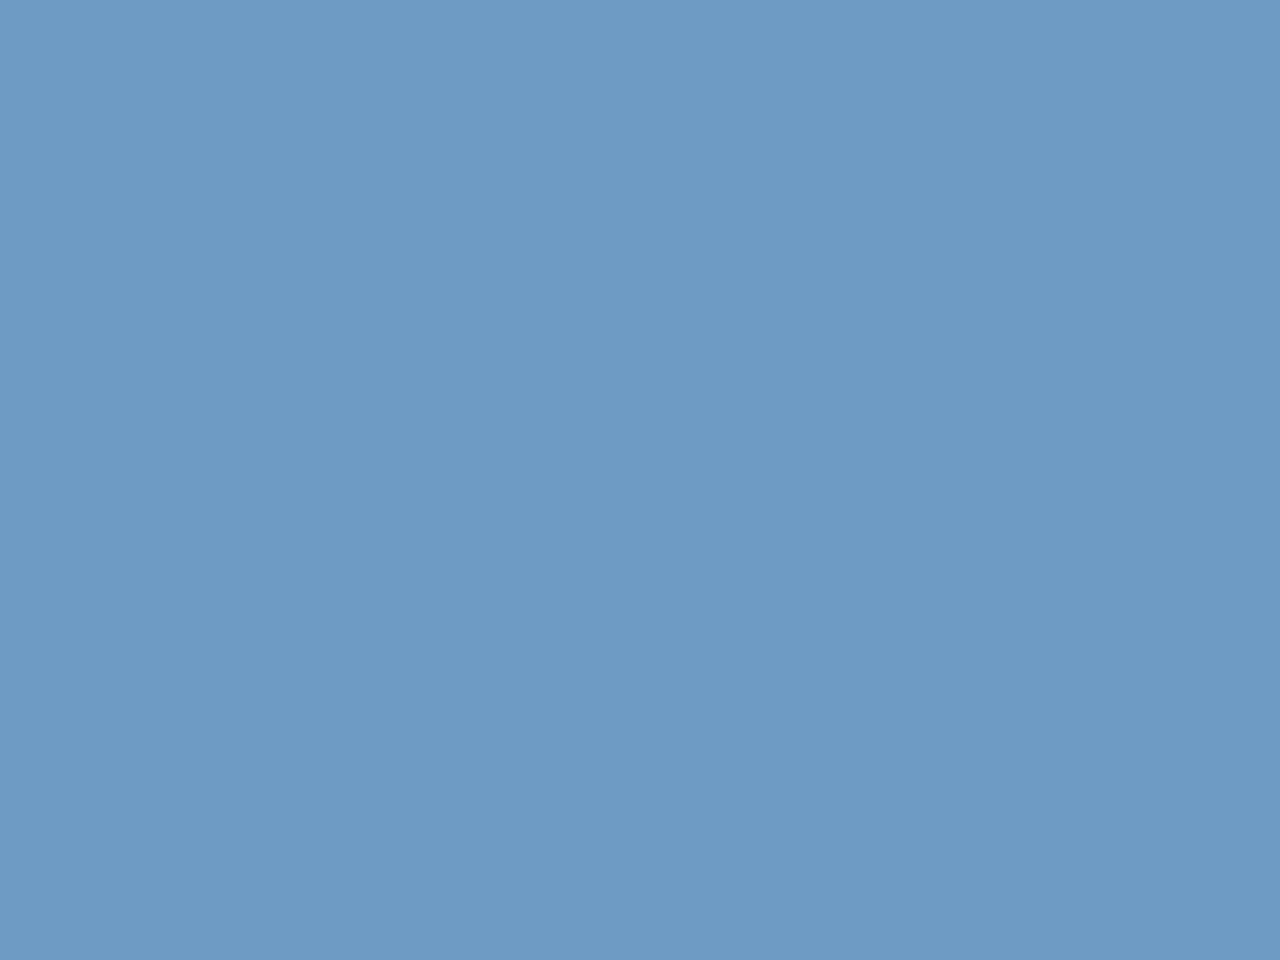 1280x960 Cerulean Frost Solid Color Background